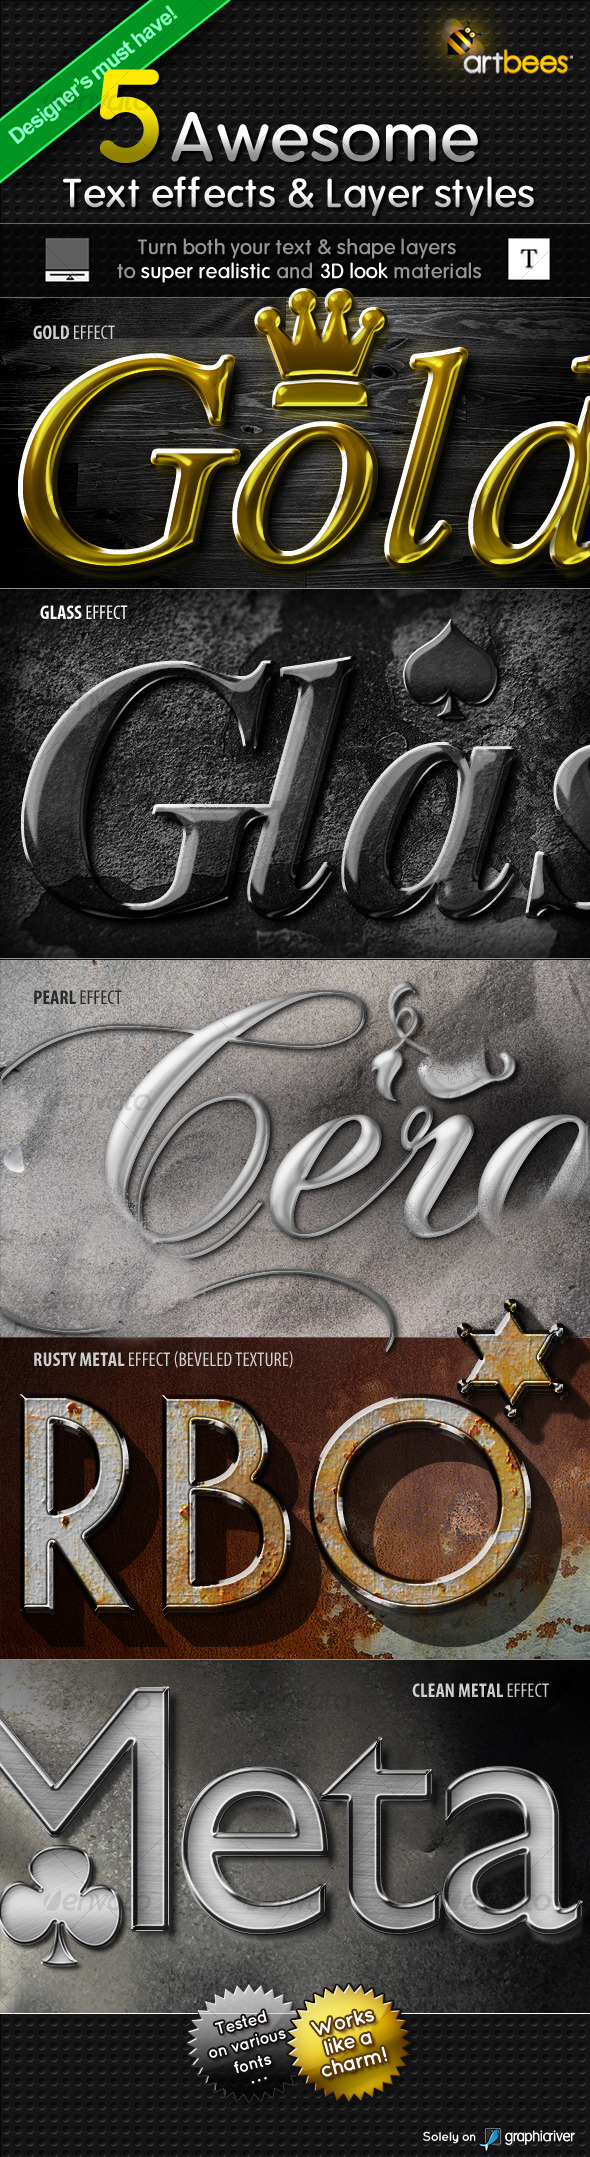 5 Awesome Text effects & Layer Styles - Photoshop Add-ons